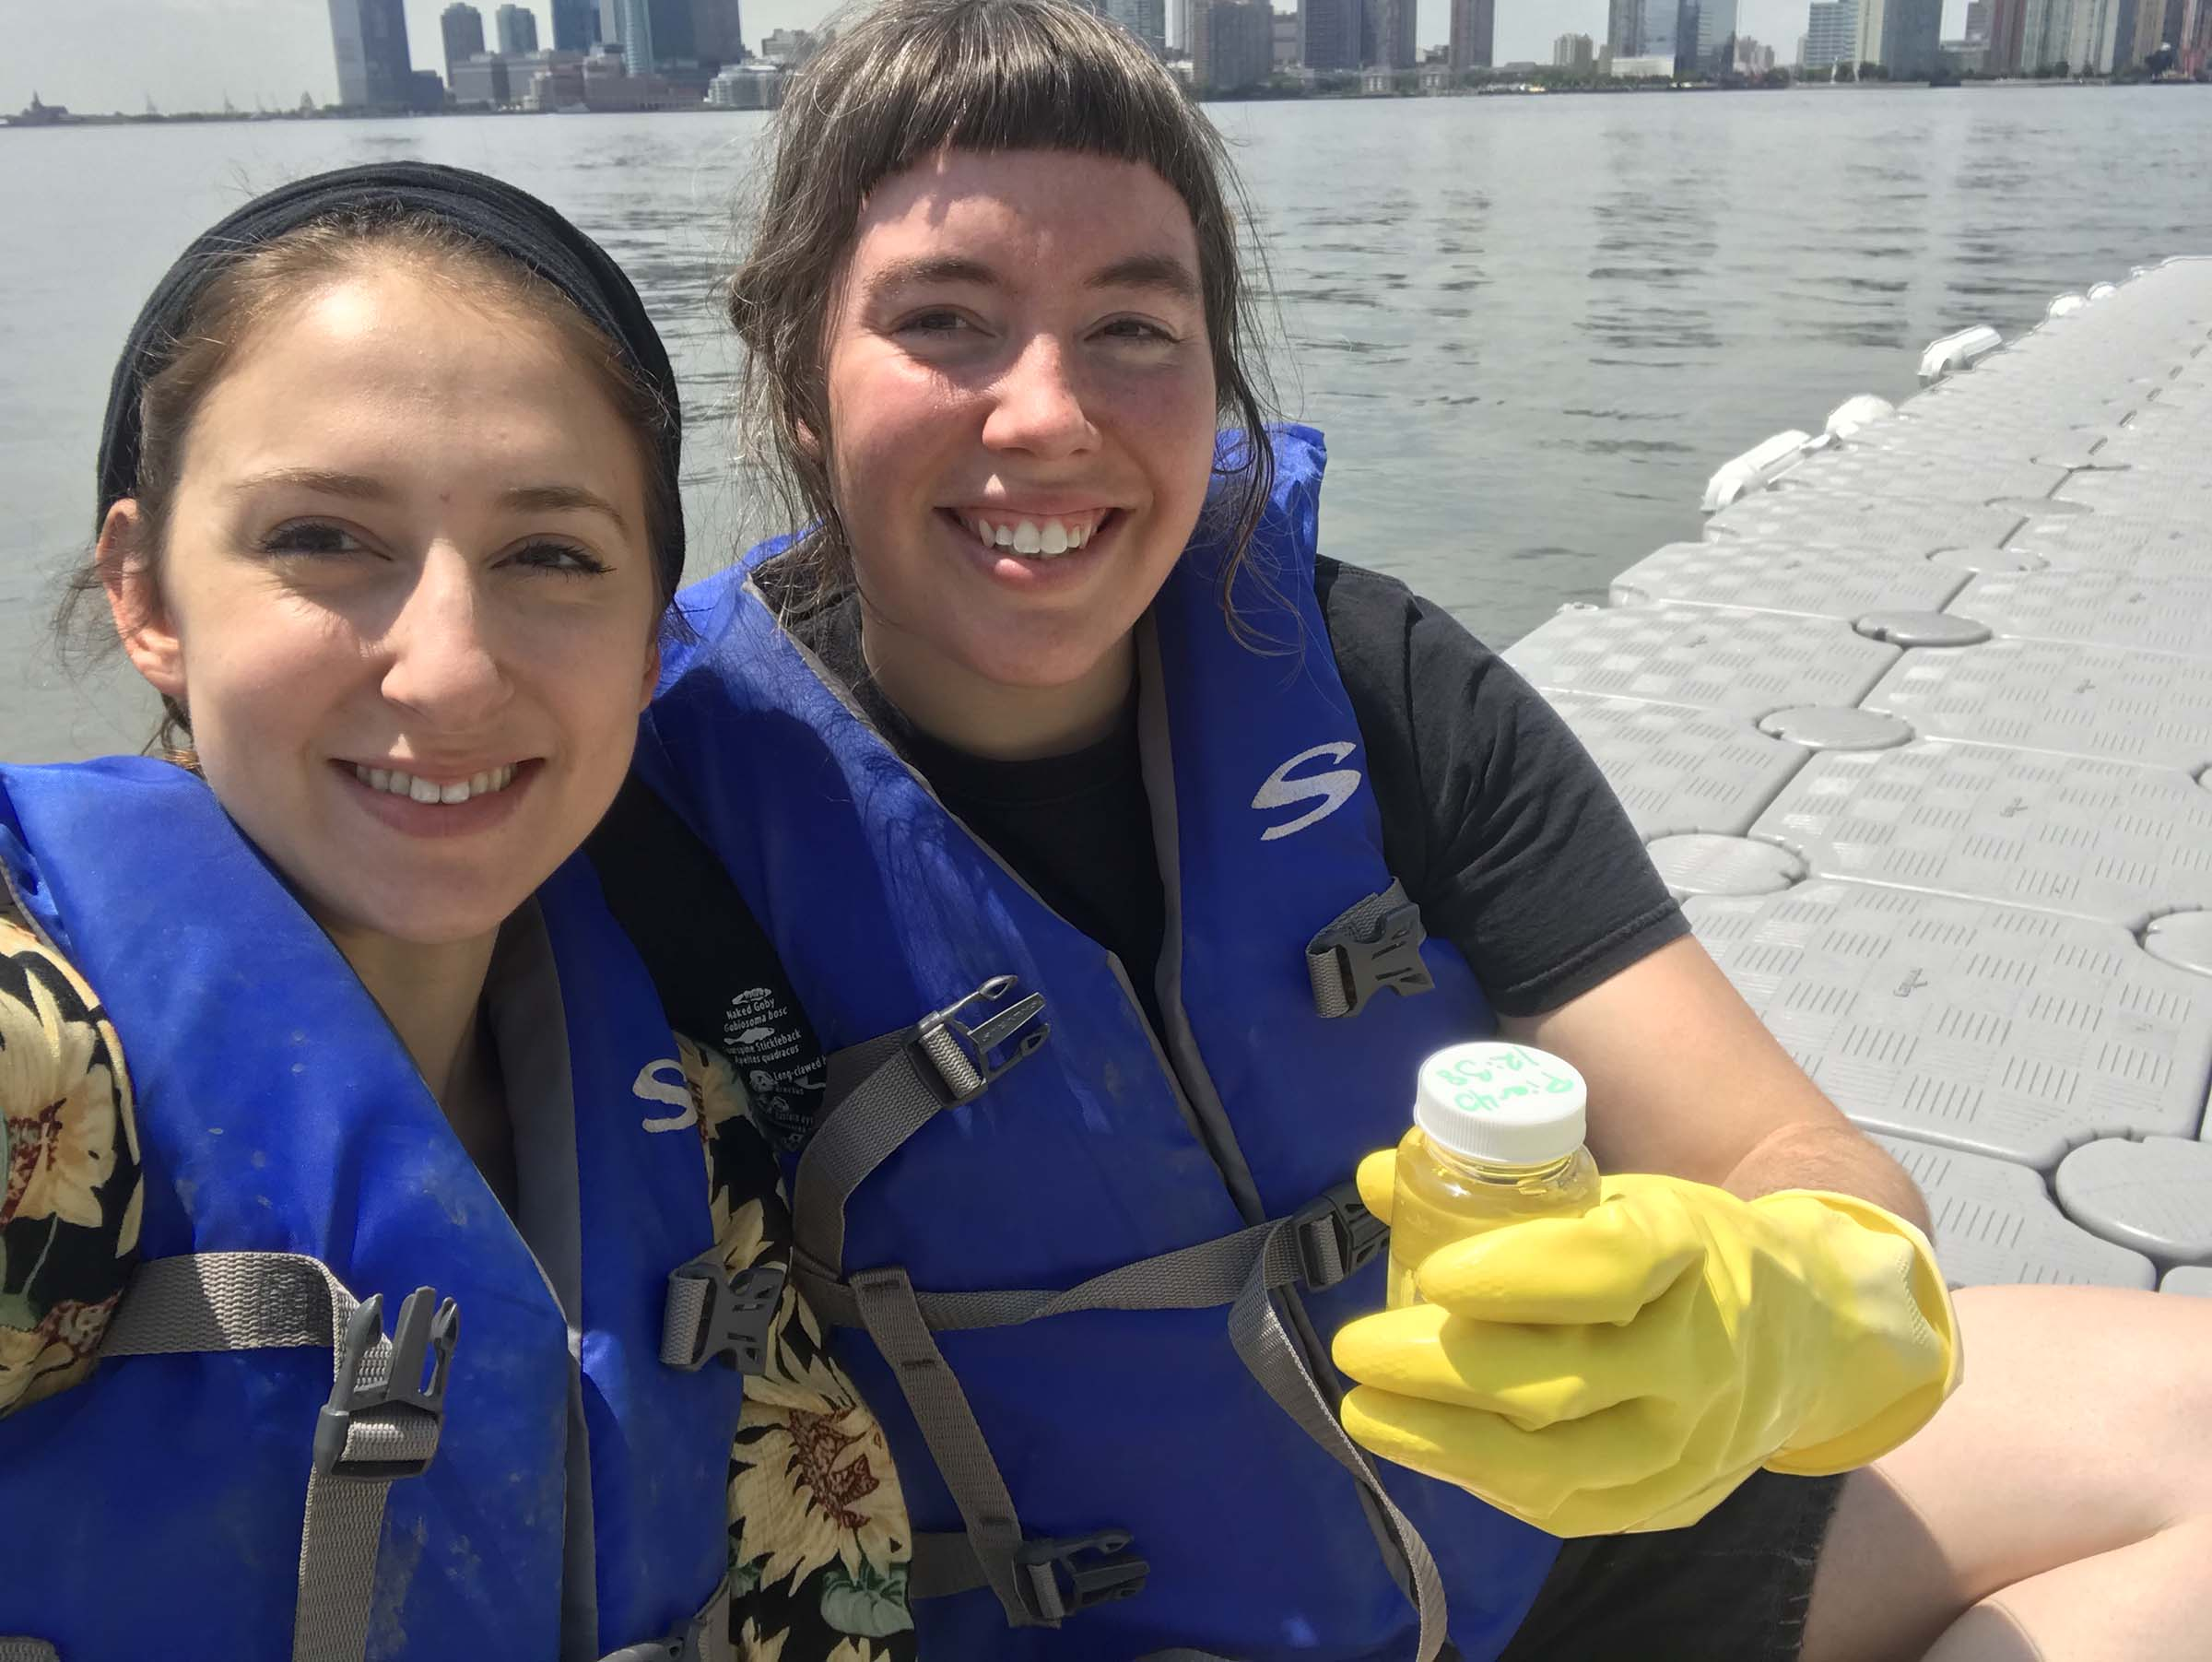 Two students smile at the camera as they hold their water specimen